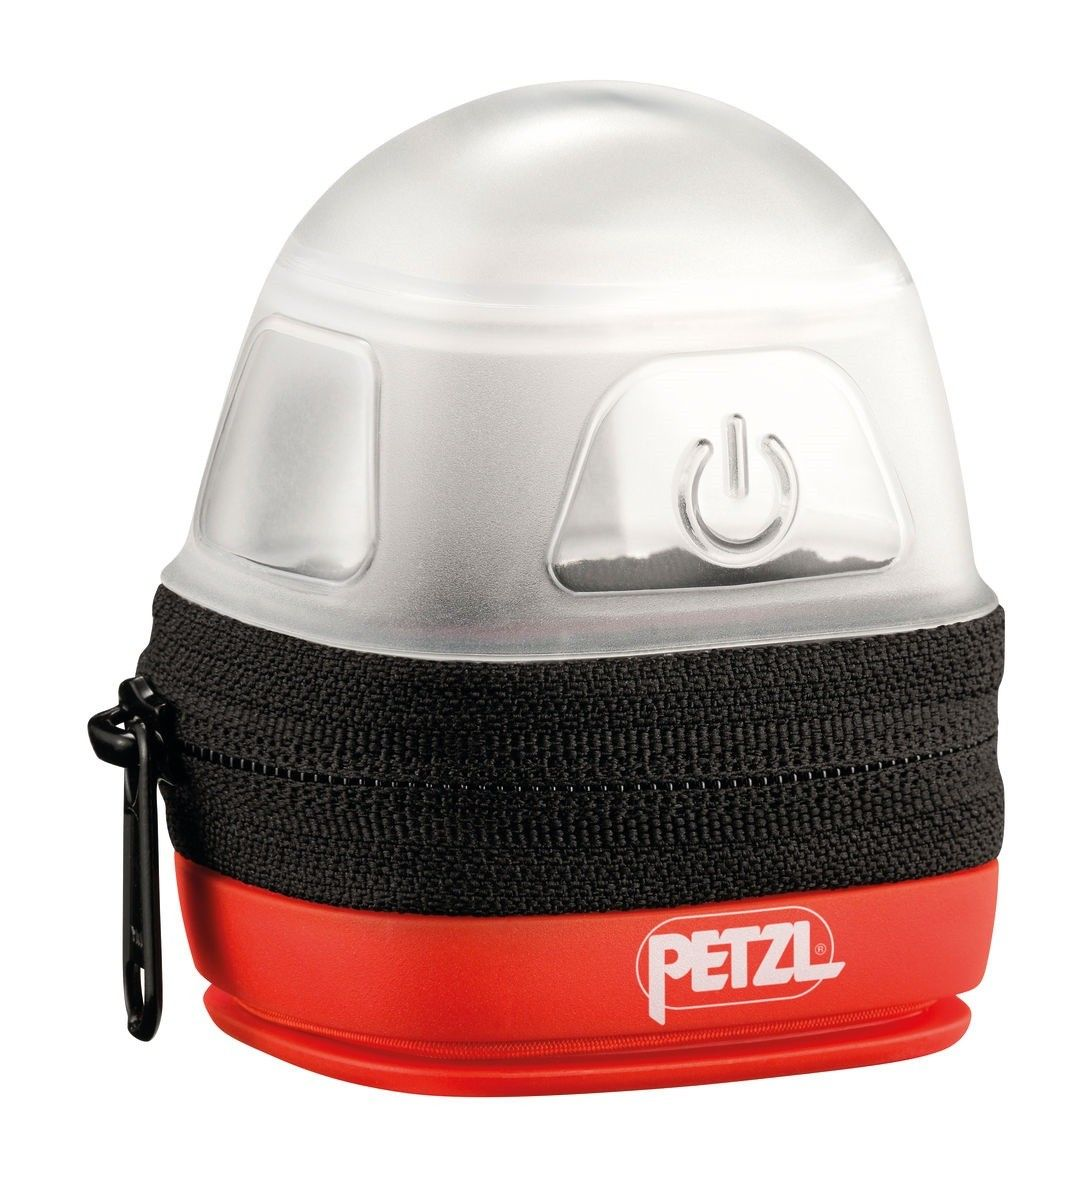 Petzl Noctilight Rot, One Size -Farbe Transparent, One Size